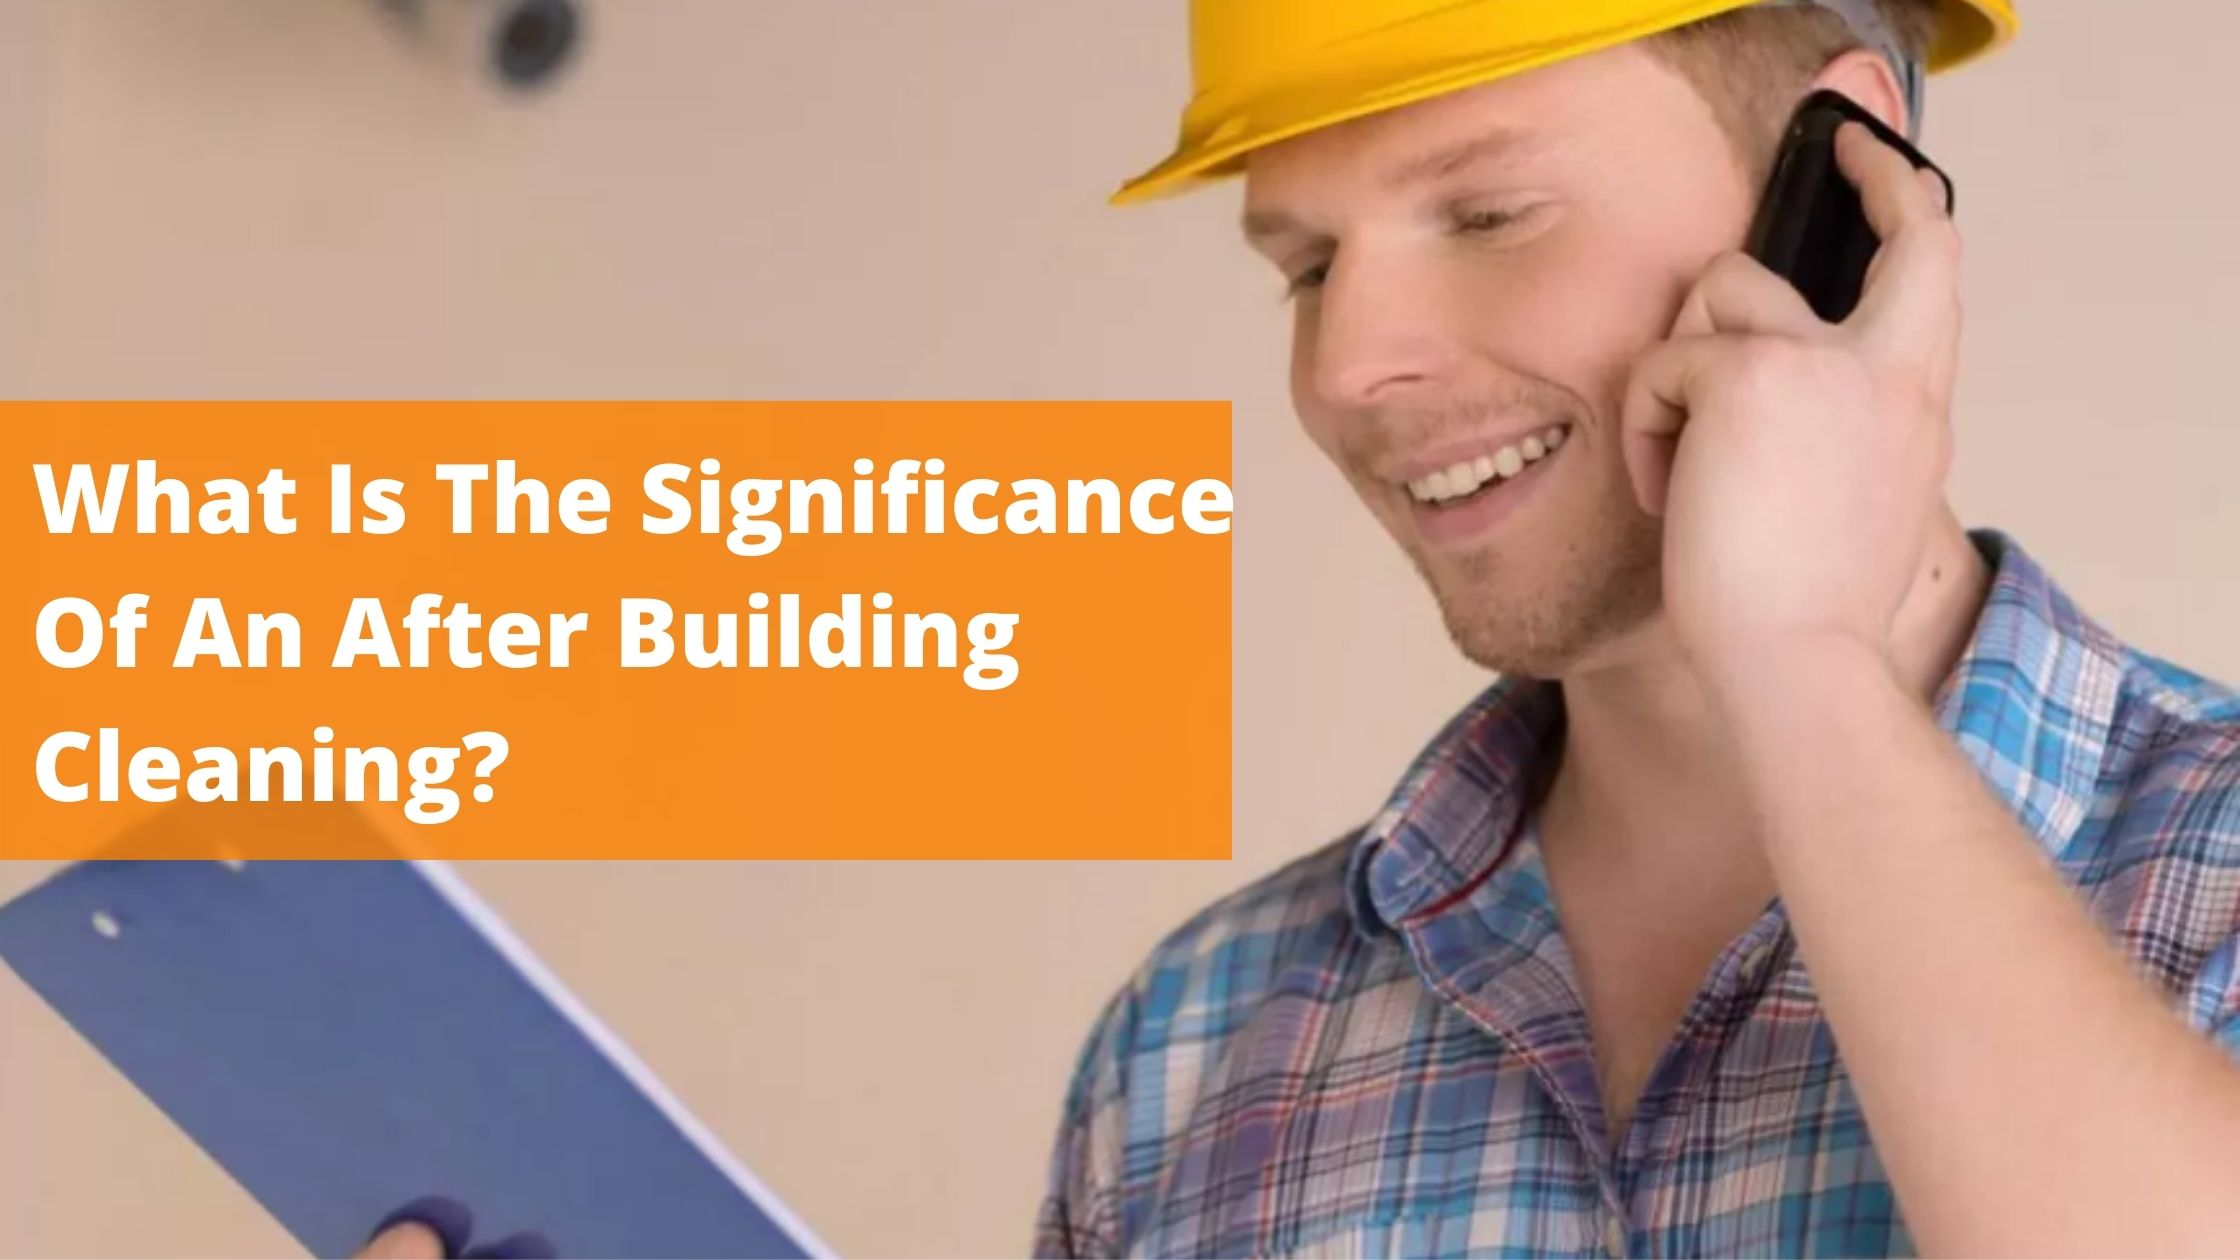 What Is The Significance Of An After Building Cleaning?